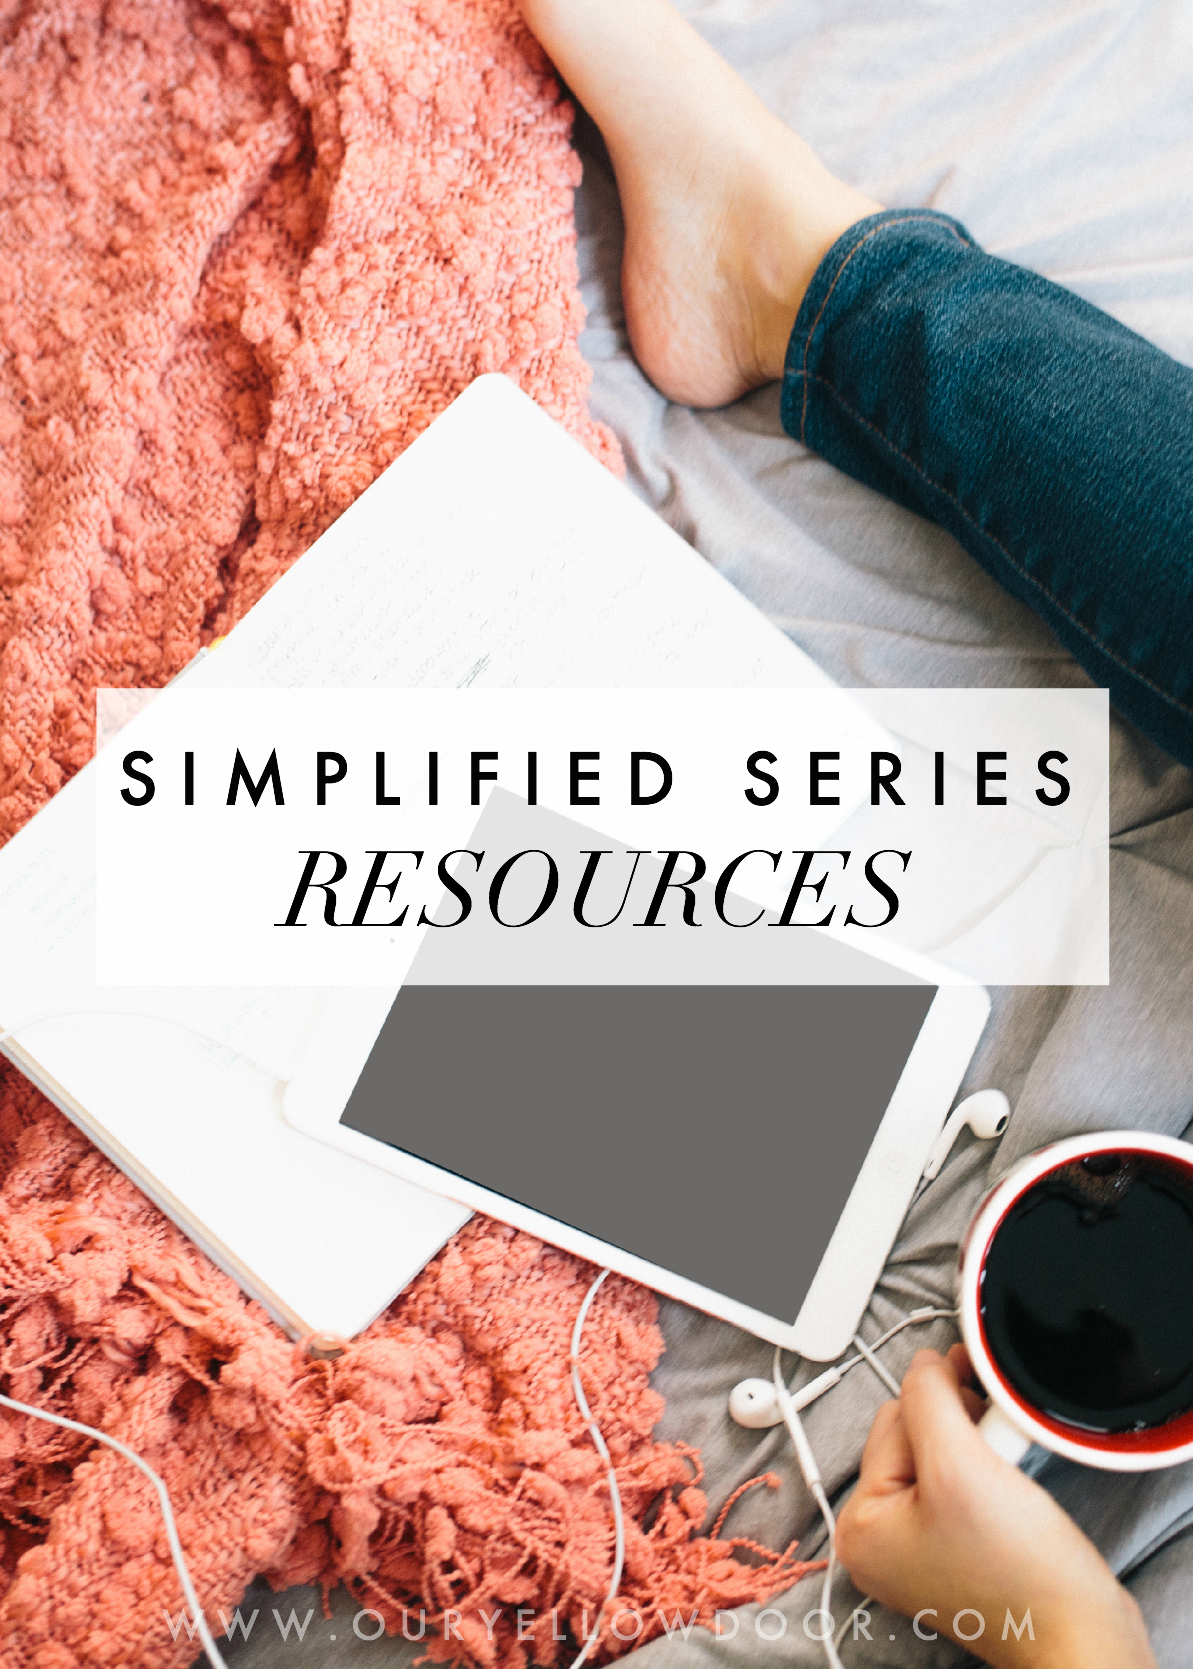 Simplified Series Resources